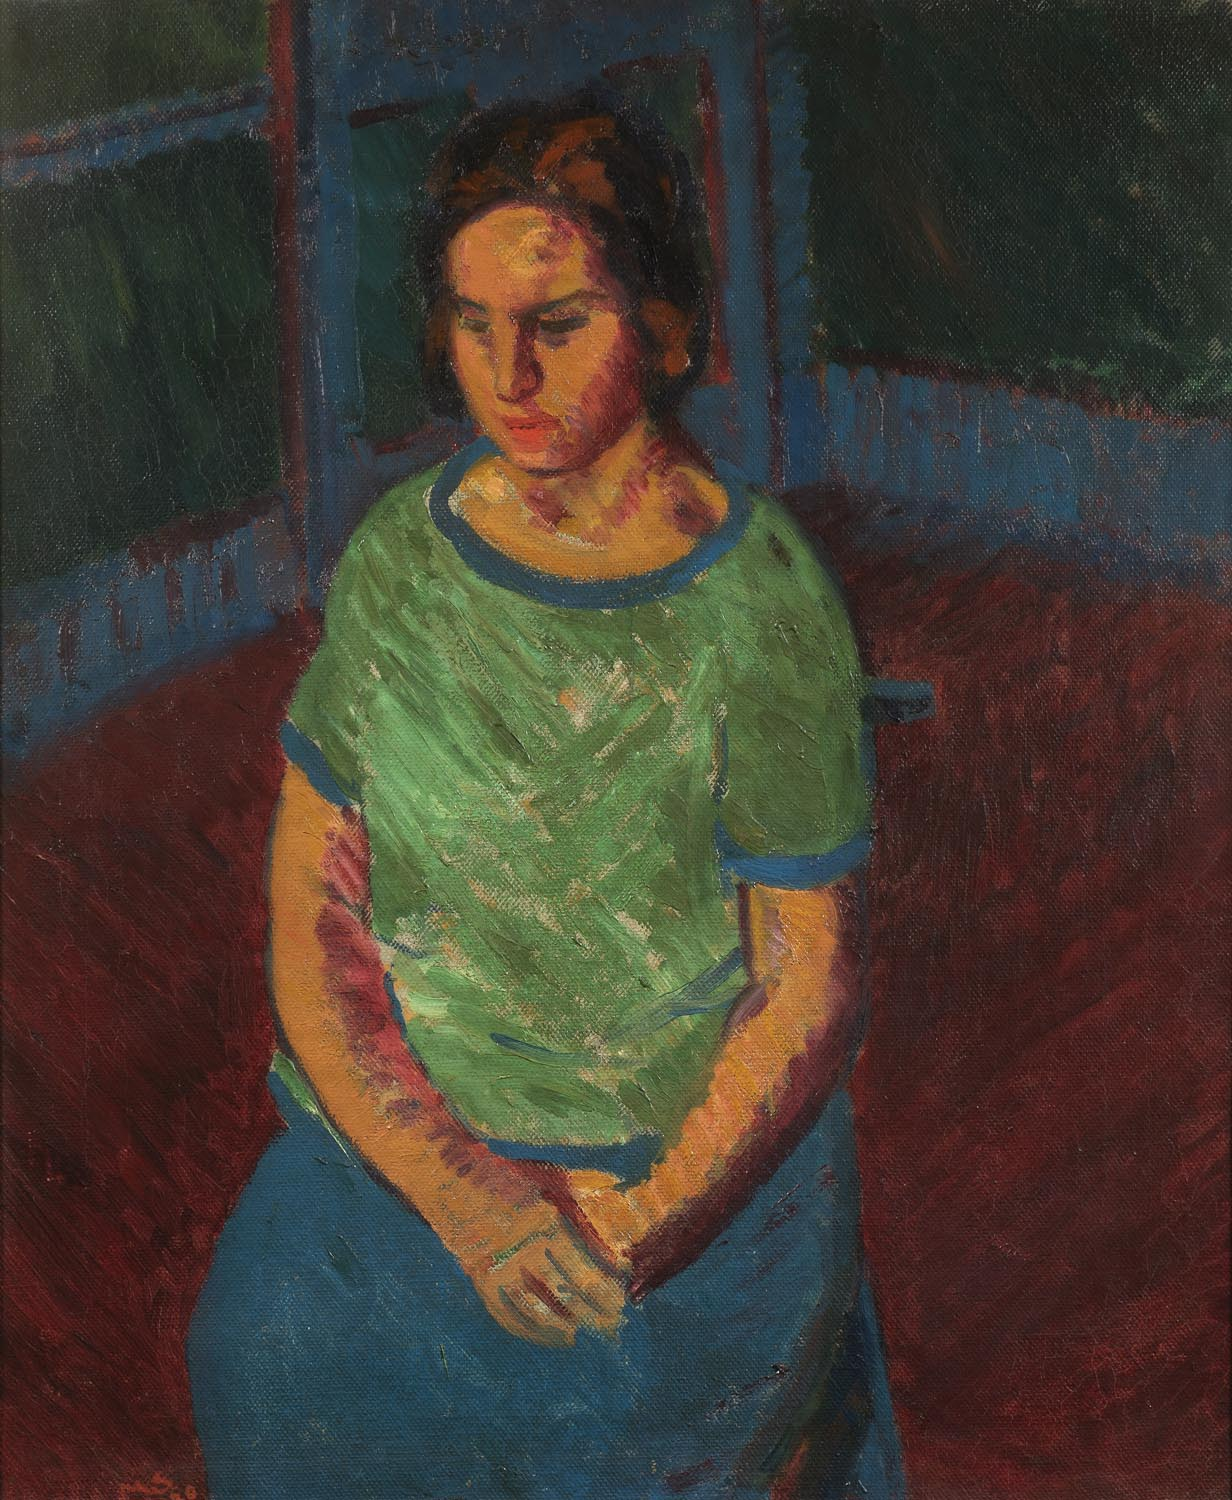 Sir Matthew Smith, Seated Model (Woman in Green), 1920. Courtesy of Crane Kalman Gallery.